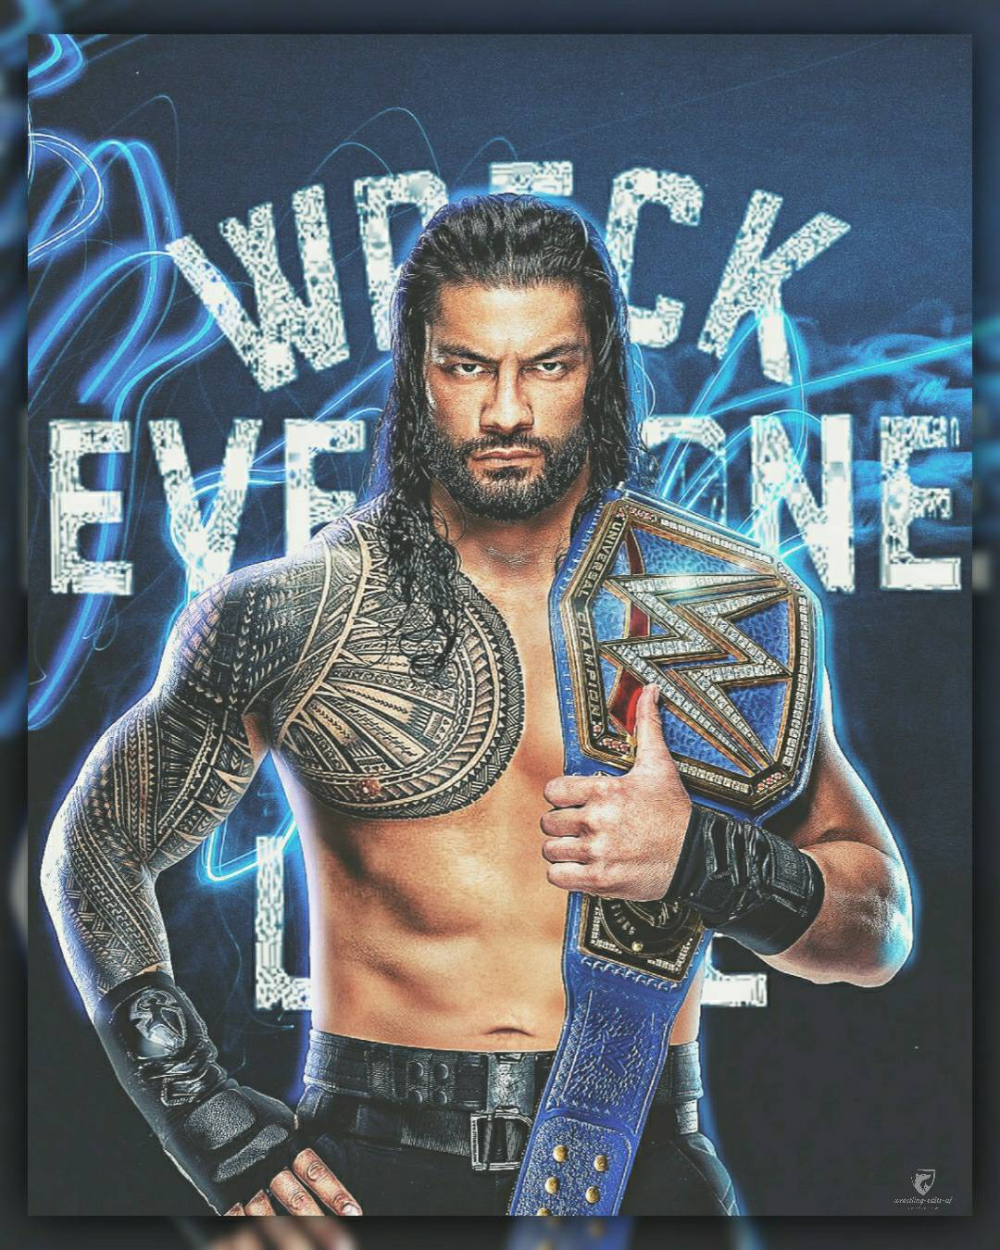 Roman Reigns Wallpaper 2020 By Brokenmoonbabe On Deviantart Wwe Superstar Roman Reigns Roman Reigns Wwe Champion Roman Reigns Shirtless